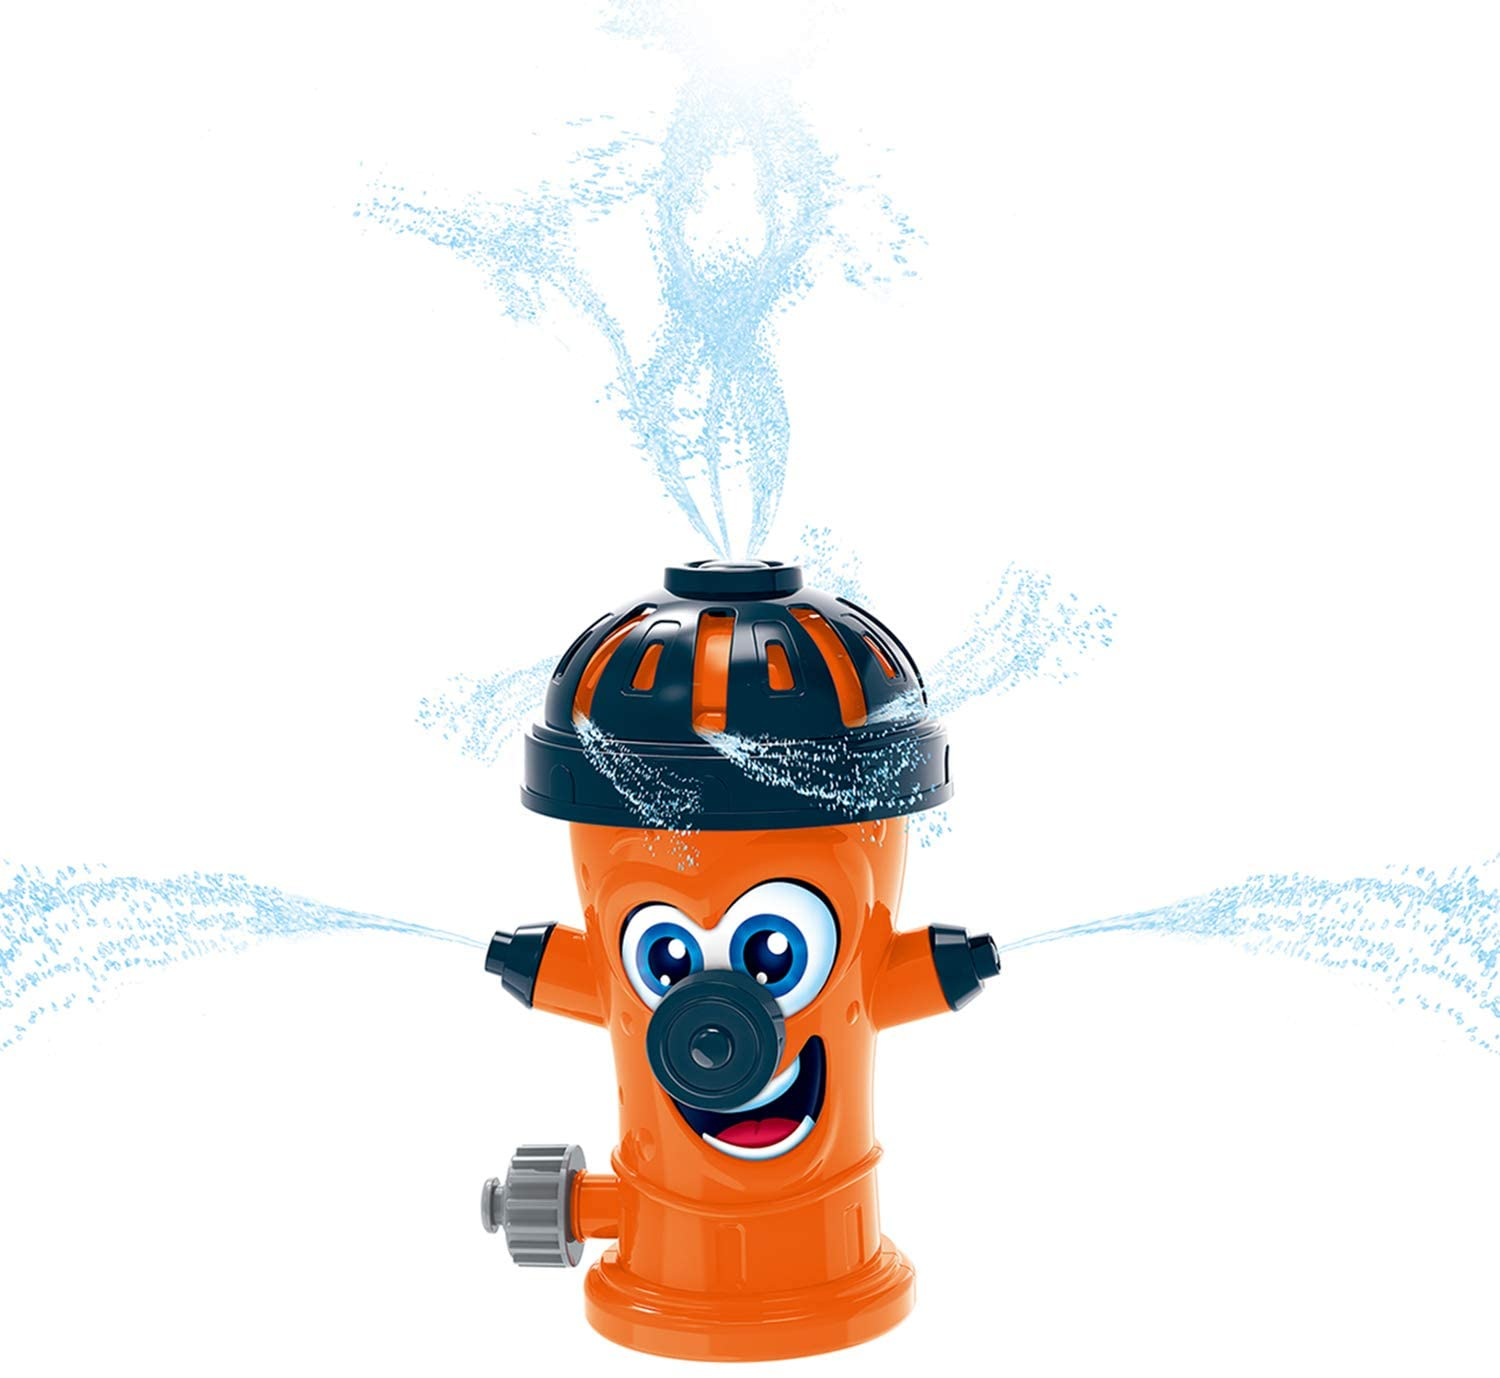 JOINBO New Hydrant Water Sprinkler for Kids, Attaches to Standard Garden Hose,Sprays Up to 10 Feet, Summer Outdoor Fun Toys for 6 Year Old Boys and Girls.(Orange)